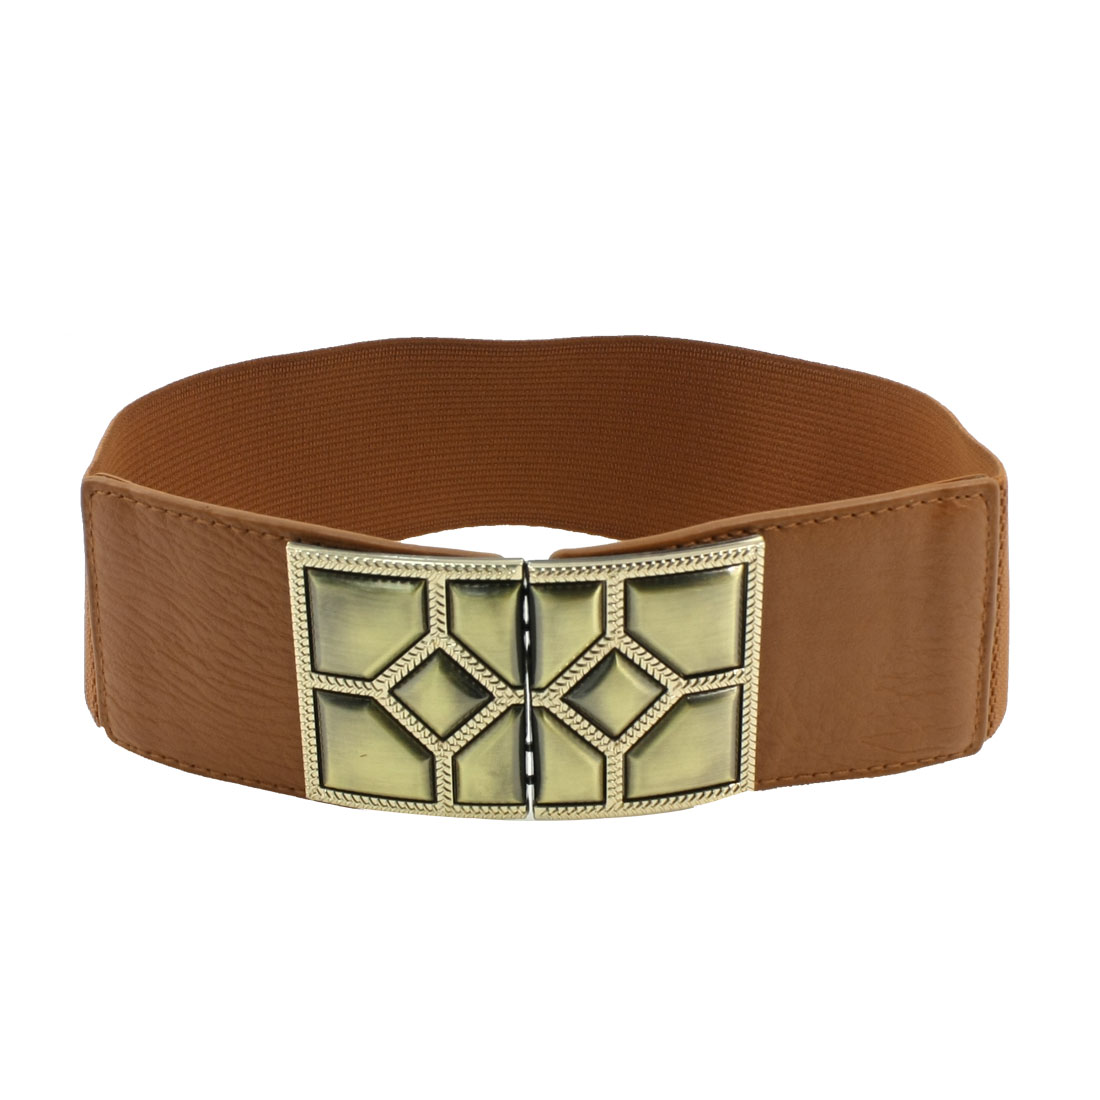 Faceted Interlocking Buckle 6cm Wide Elastic Cinch Belt Brown for Lady